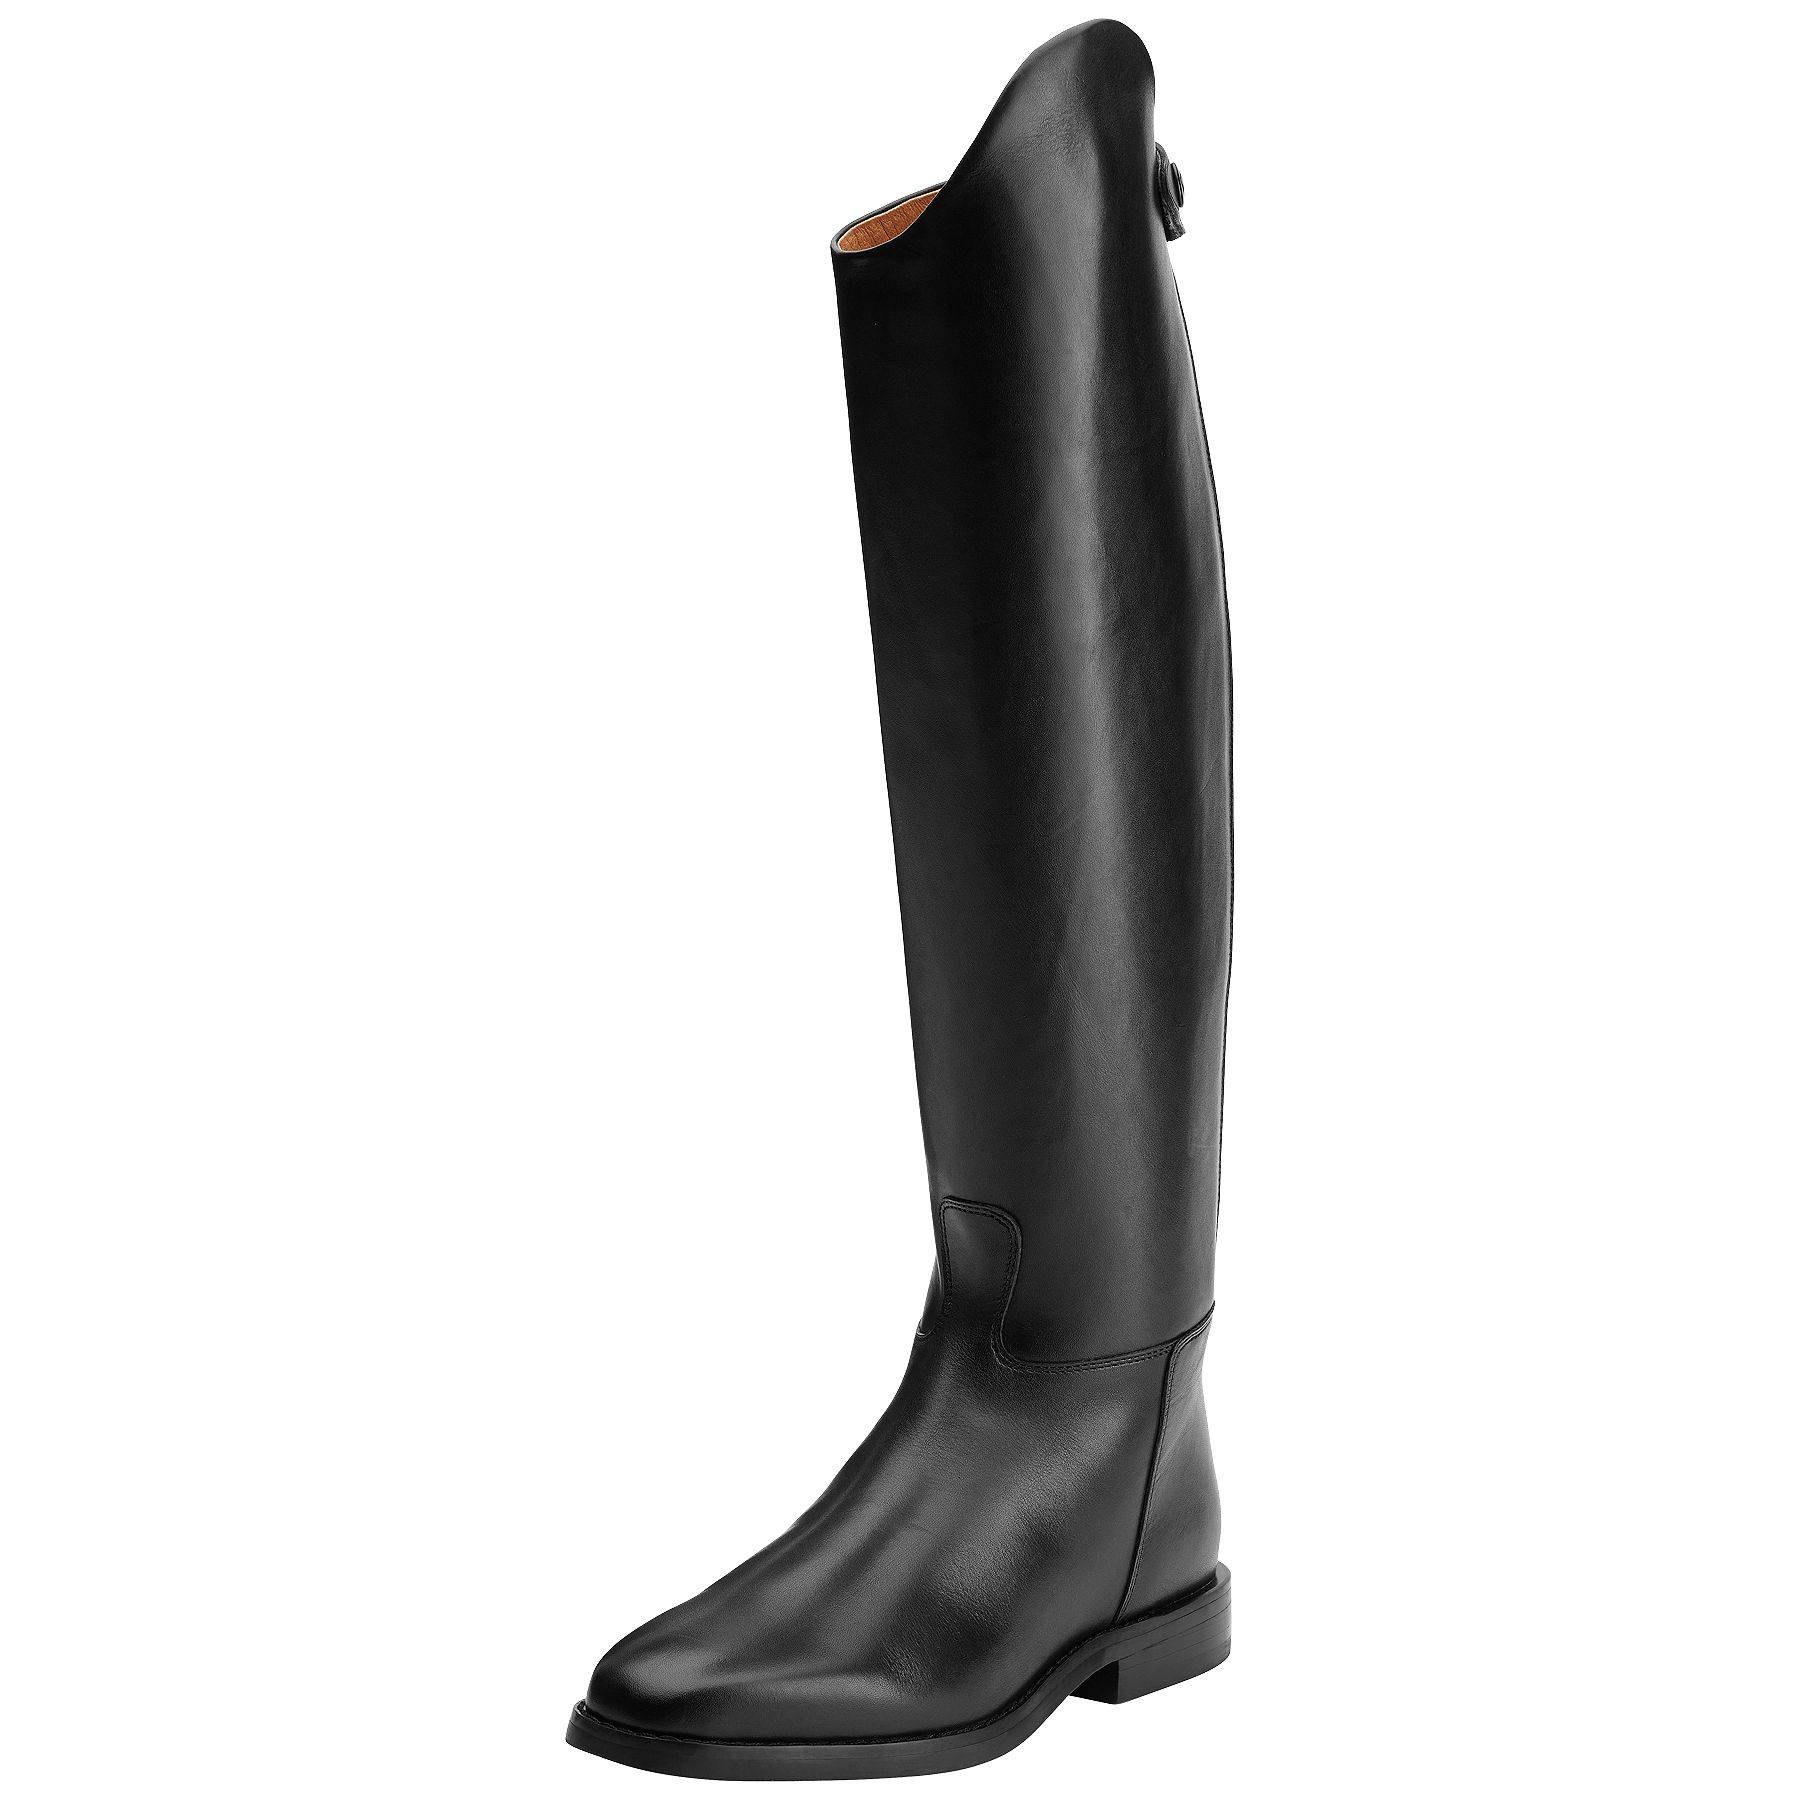 Ariat Cadence Dressage Boot - Ladies, Black